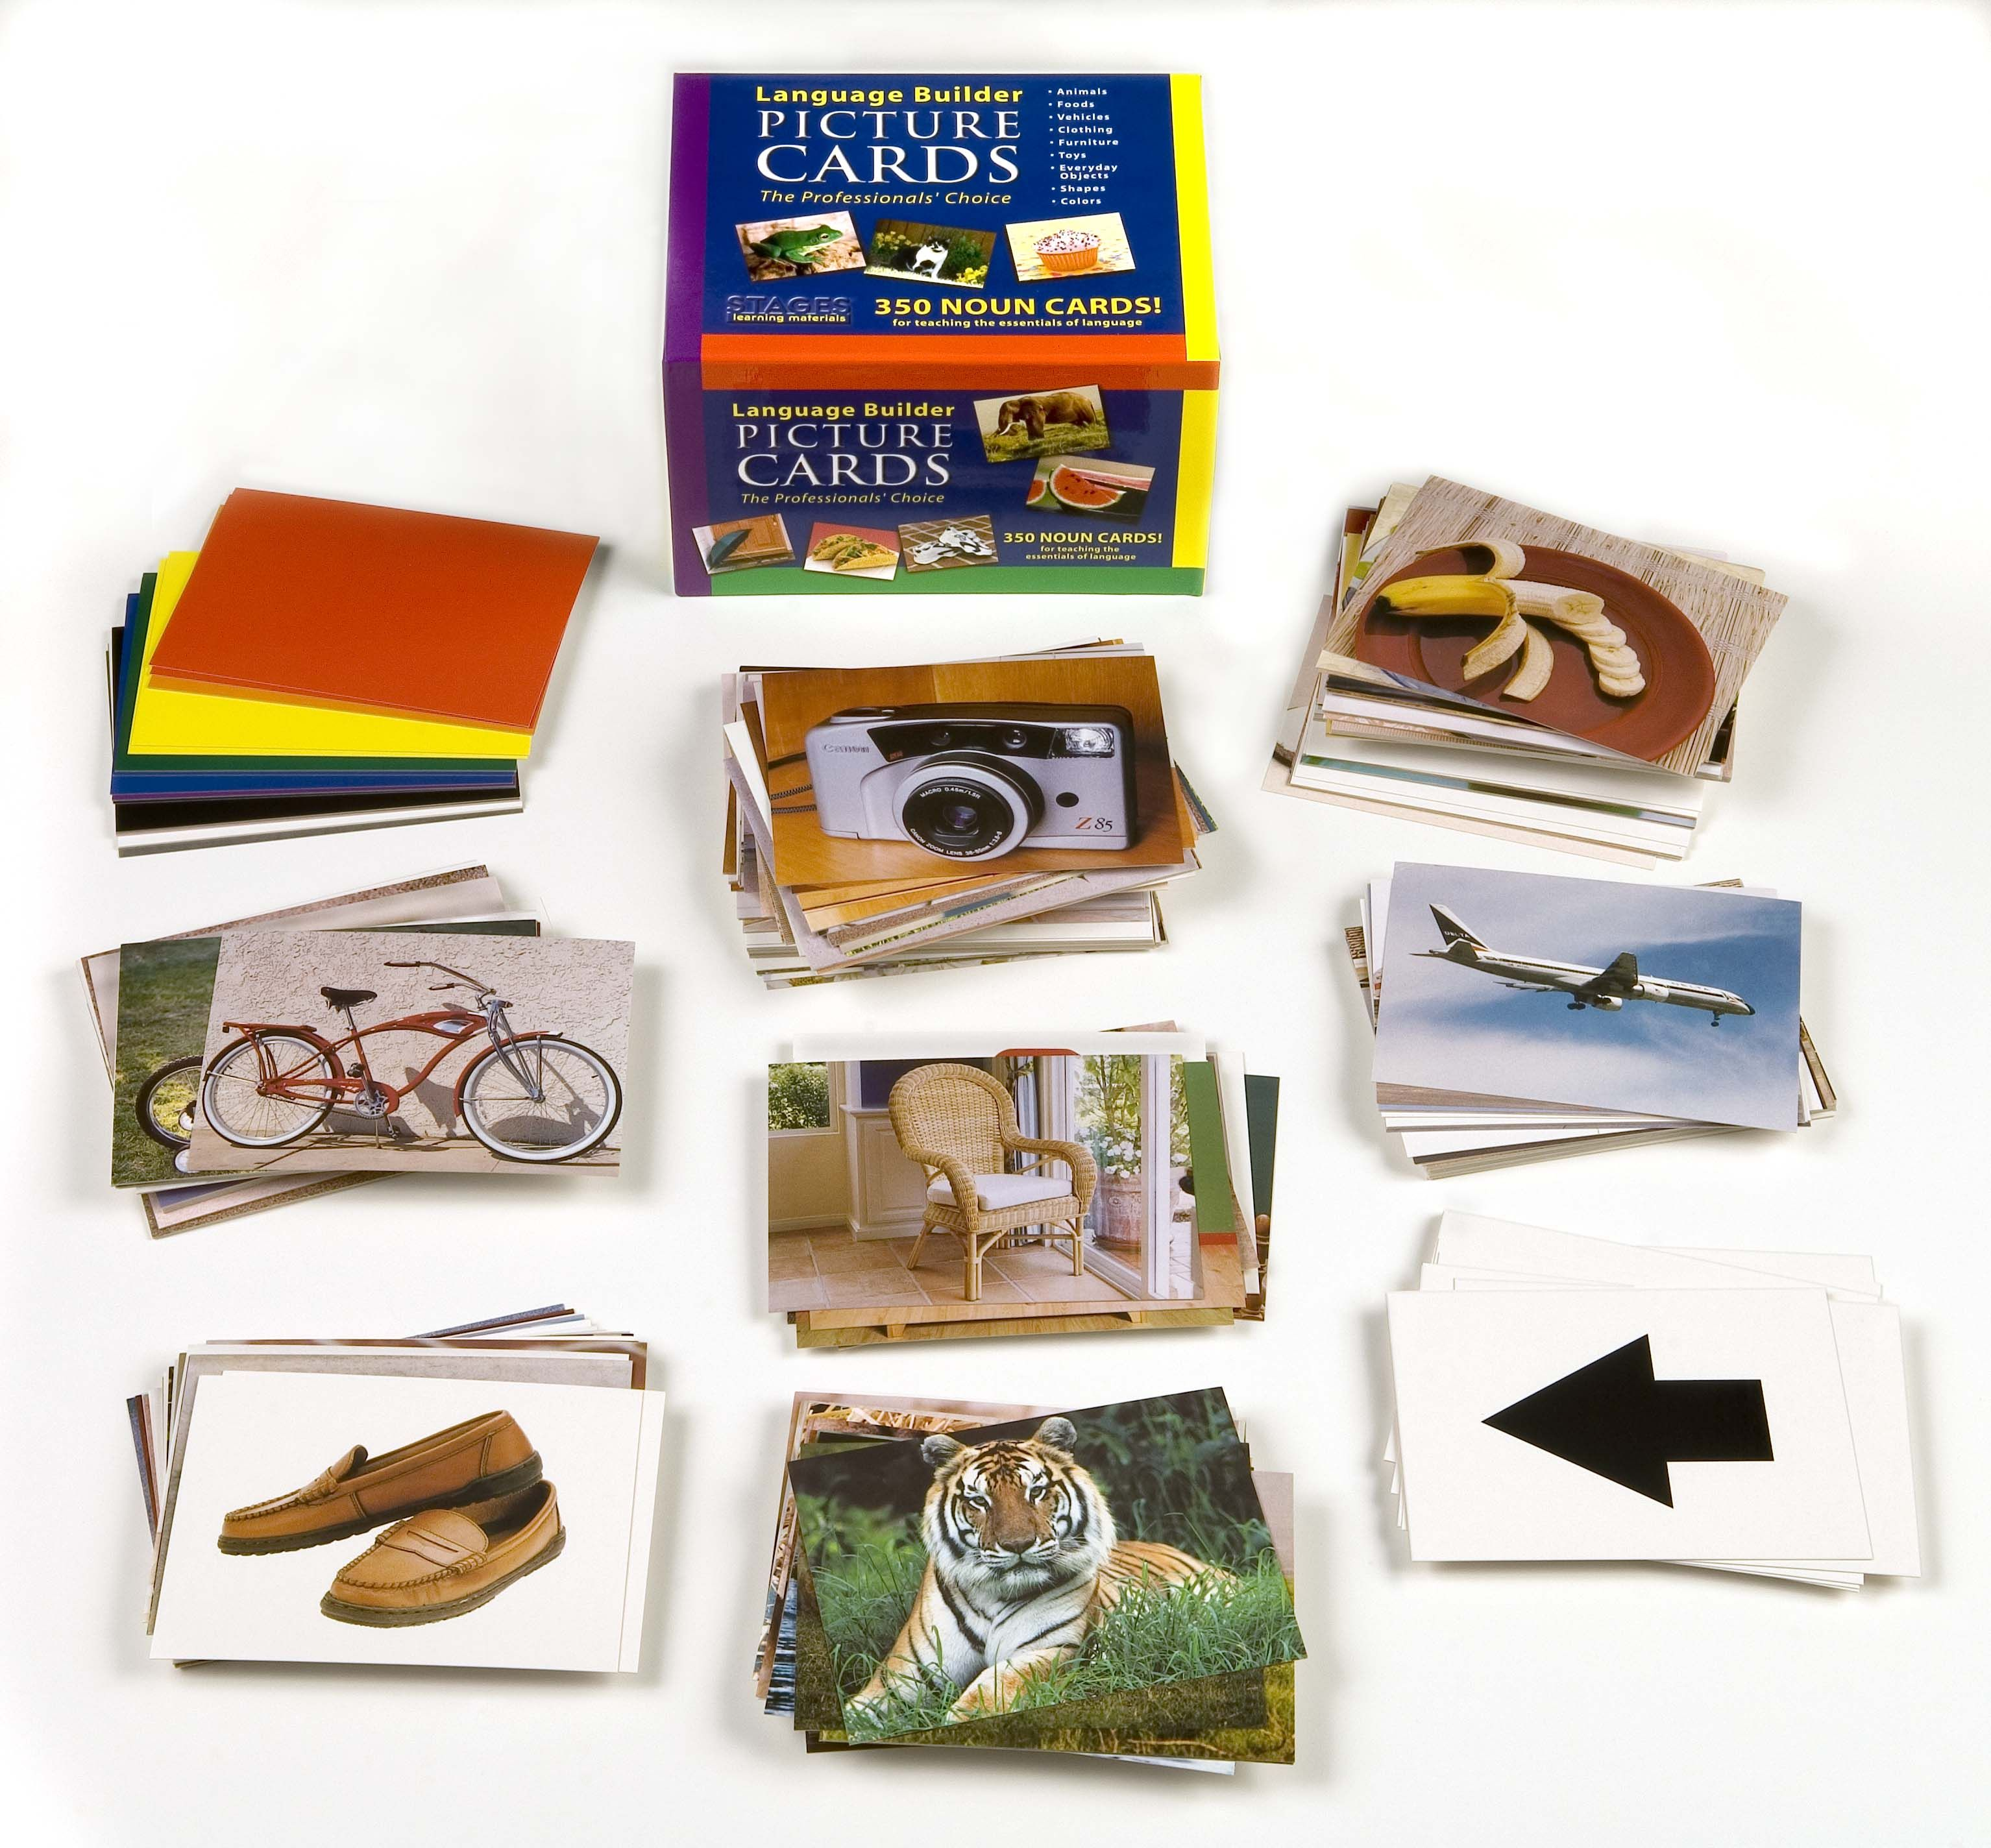 Download Free Photographic Flashcards From The Slp And Aba Therapist Beloved Language Builder